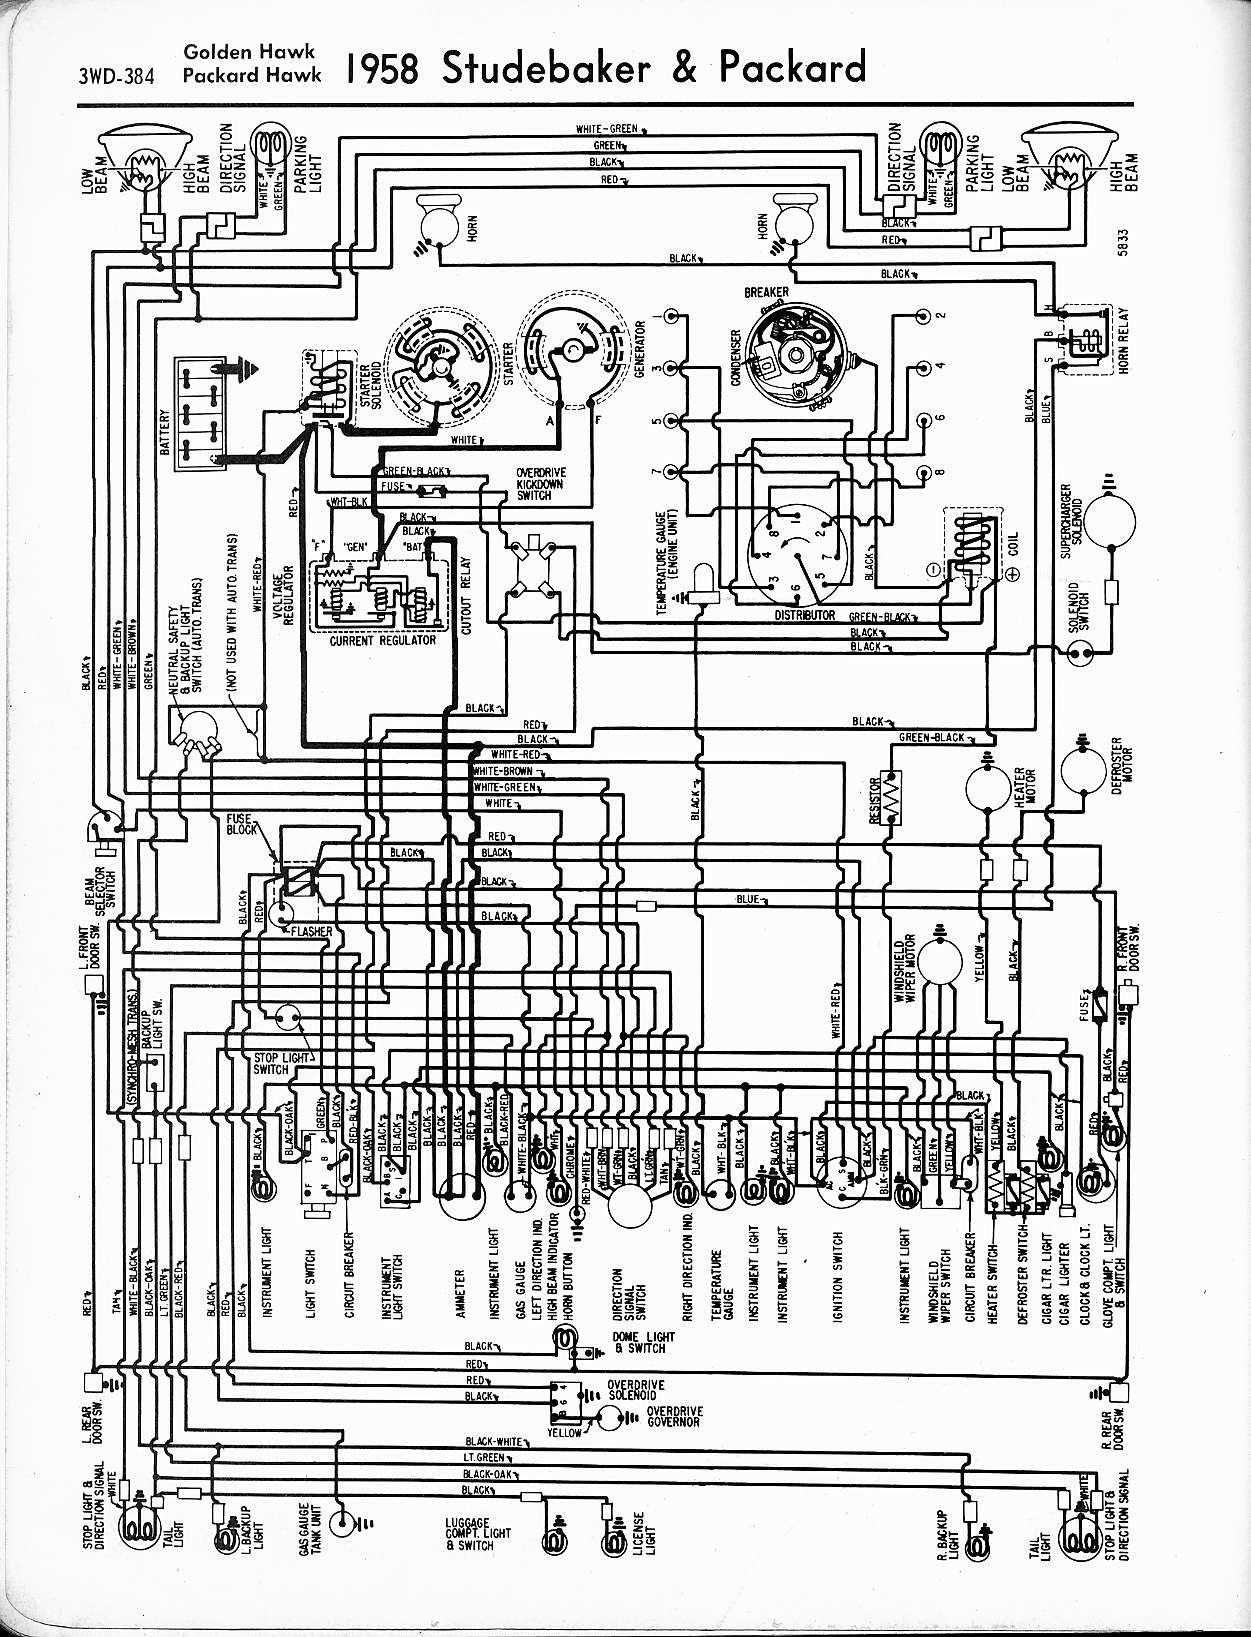 MWire5765 384 1948 packard wiring diagram on 1948 download wirning diagrams suzuki ts 50 wiring diagram at eliteediting.co